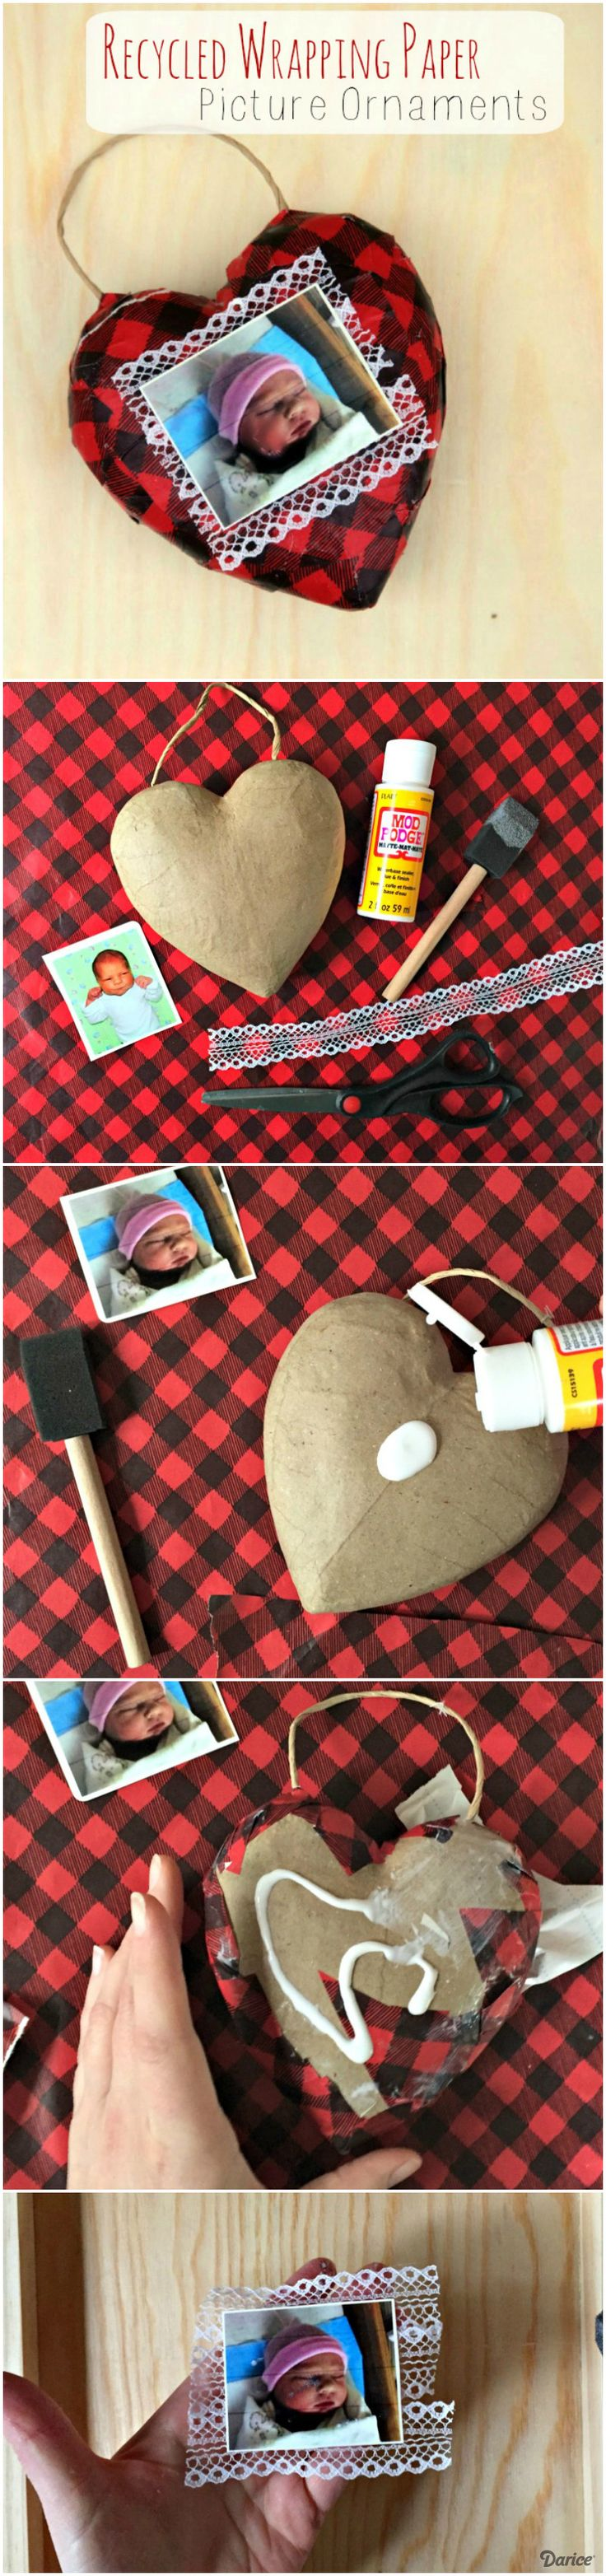 Plaid monograms natural wood ornaments feathers and i couldn t - Diy Picture Ornaments Made With Recycled Wrapping Paper